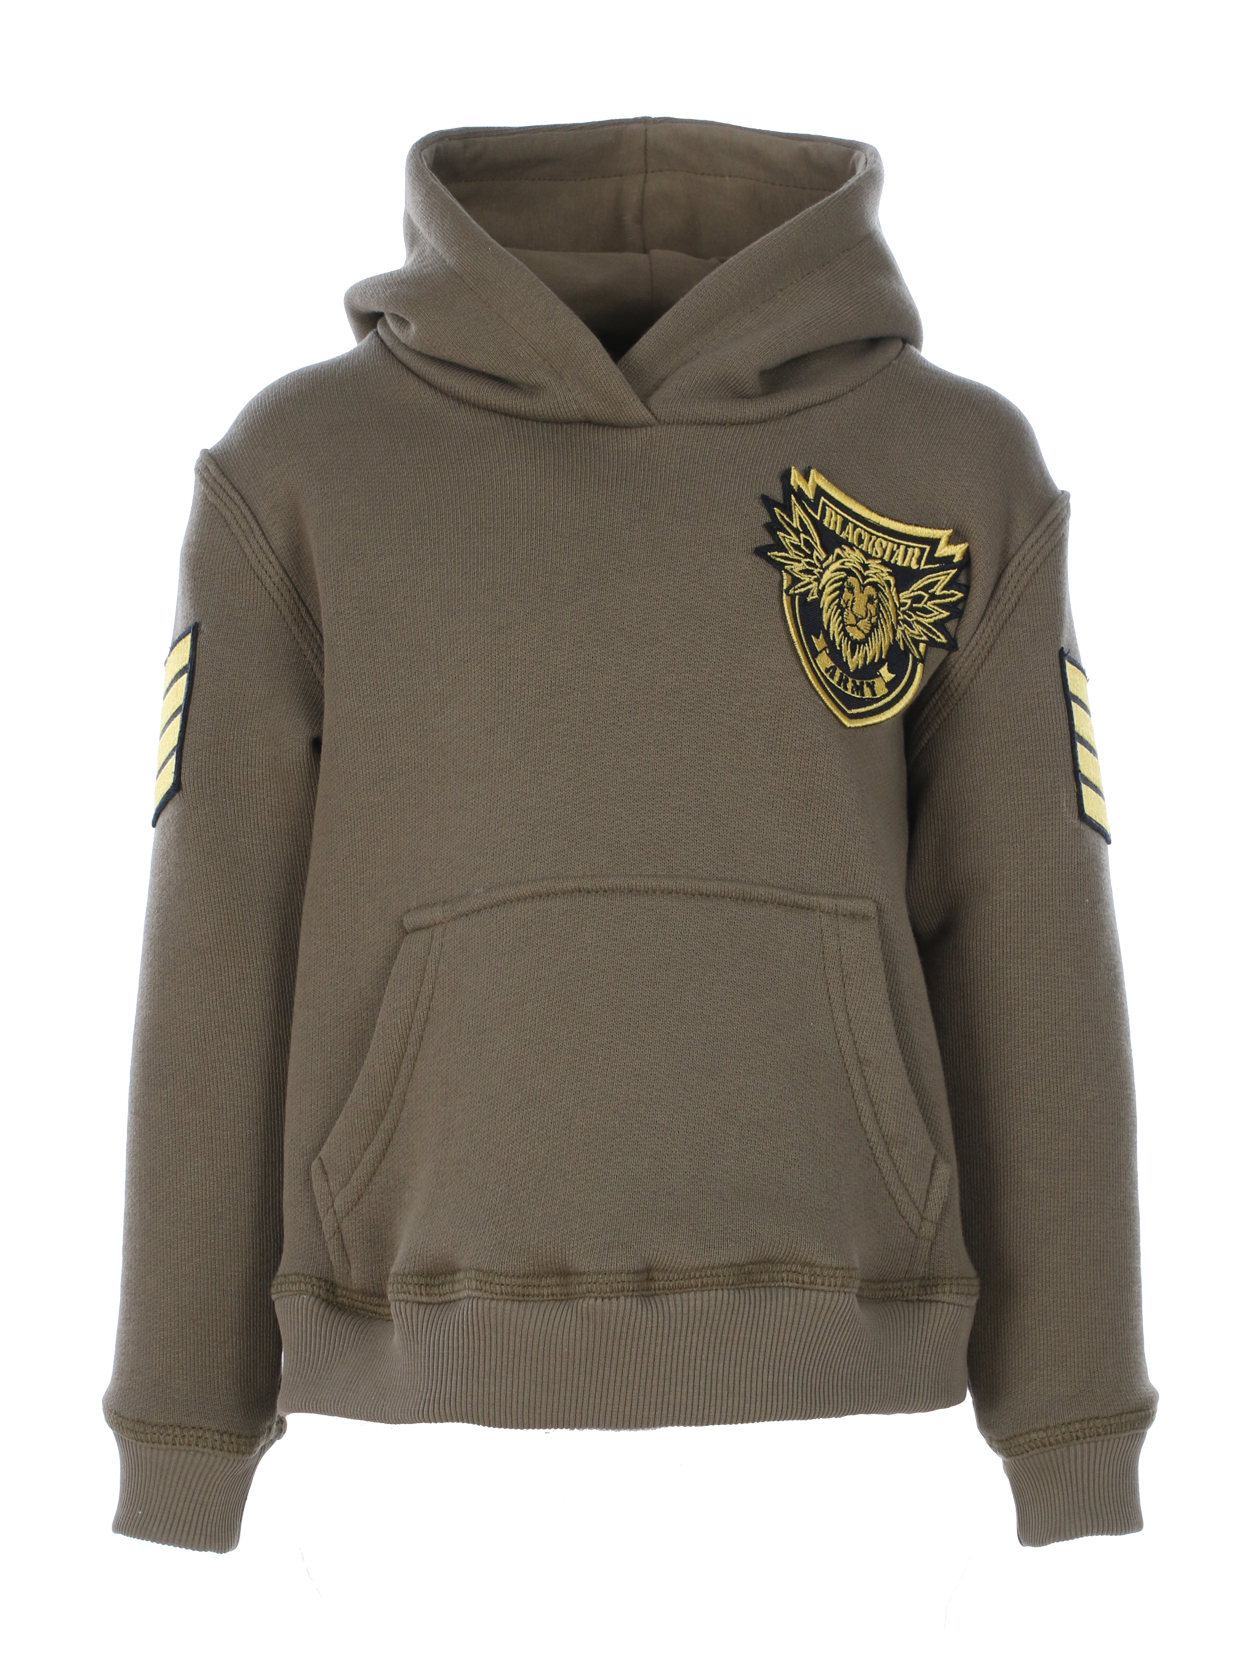 Kids hoodie Black Star ArmyKids hoodie by Black Star Wear. Straight fit, big hood and front pocket. Elastic band on sleeves and cut. Patch with lions head and Black Star Army lettering on the chest, chevrons on sleeves. Classic model in khaki.<br><br>size: 3-4 years<br>color: Khaki<br>gender: unisex